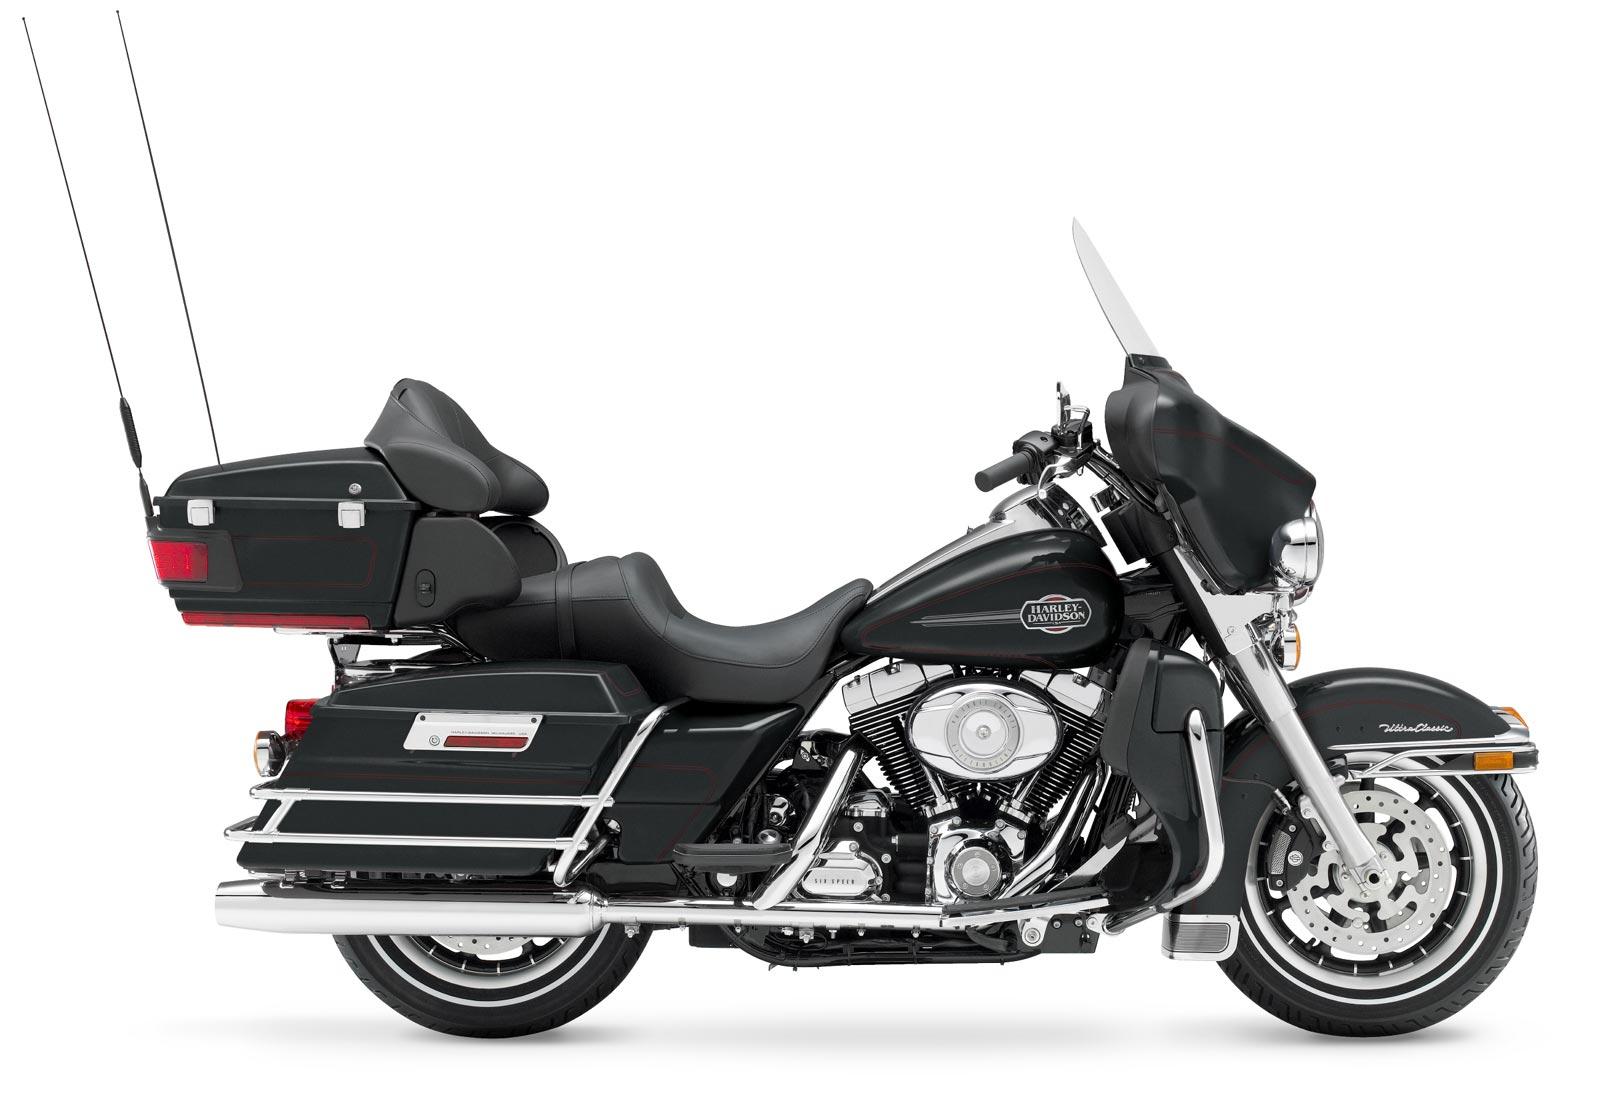 Harley-Davidson FLHTC Electra Glide Classic 2003 pics #18016